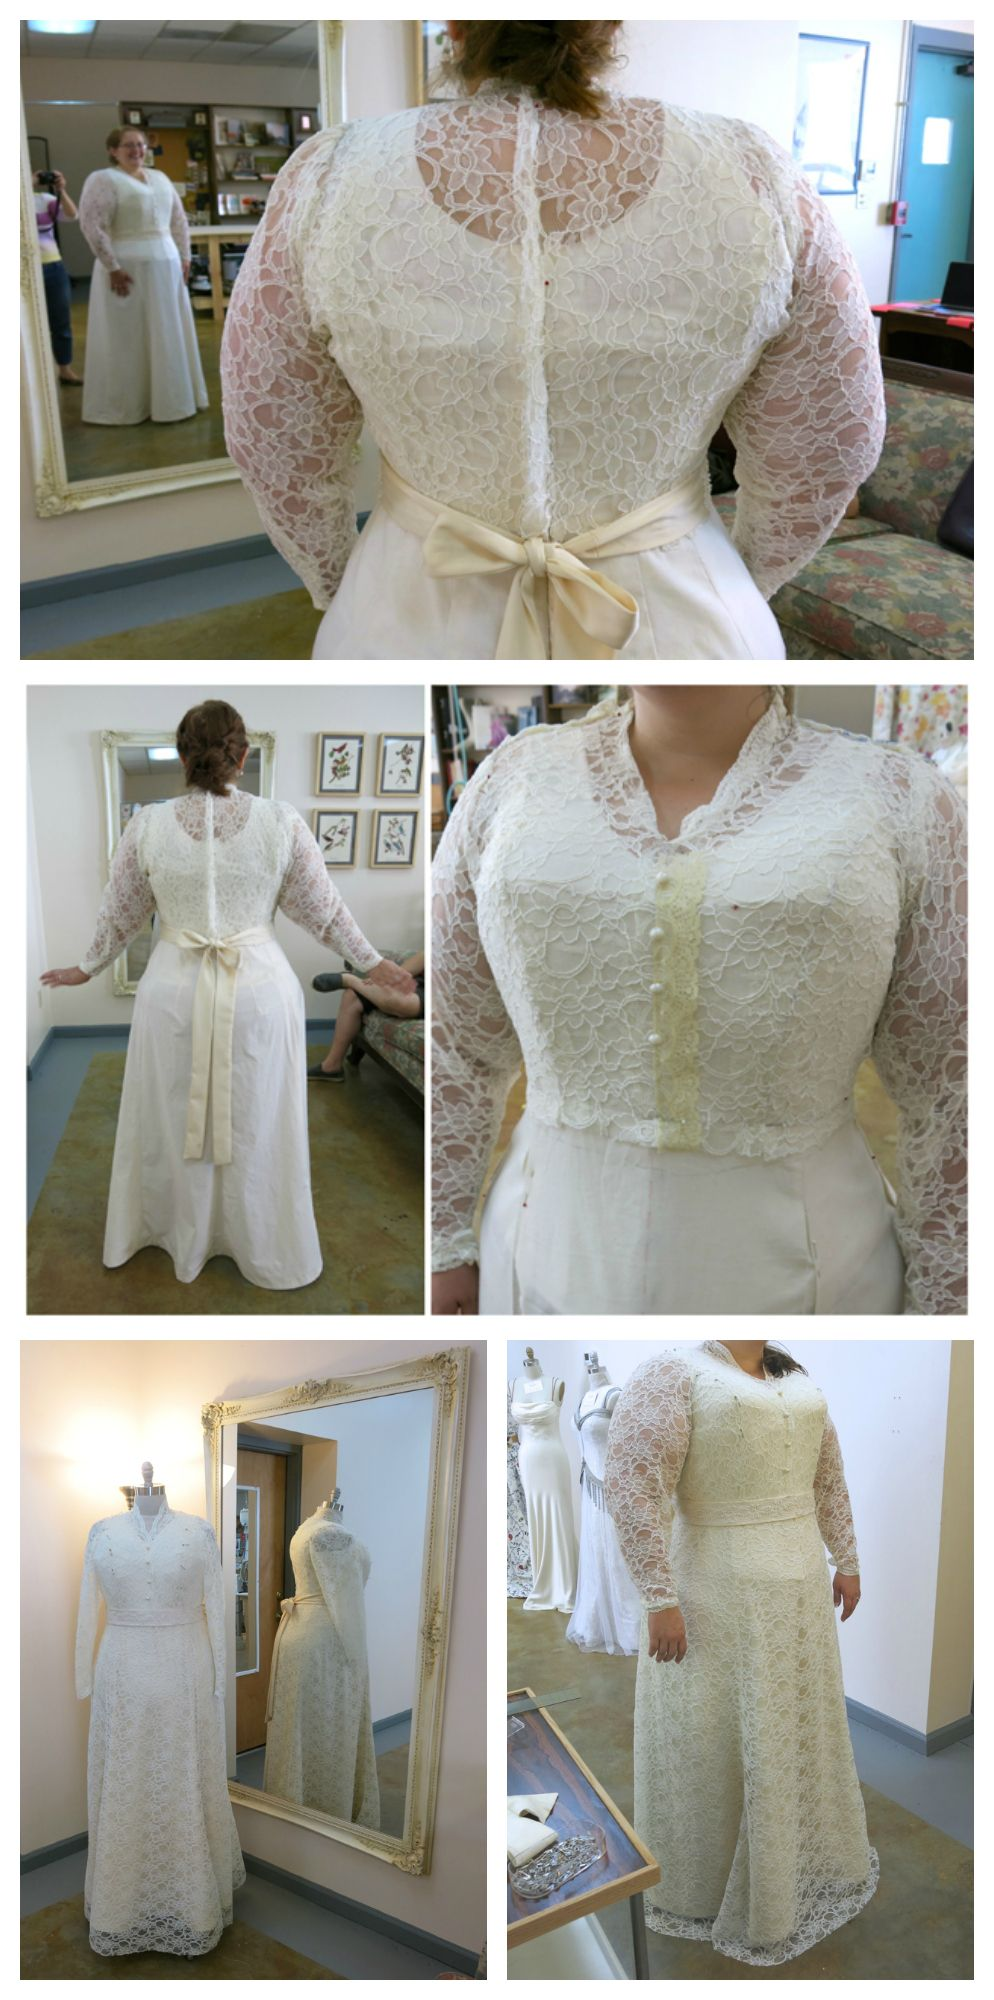 Mockup And Basted Fittings For Caitlins Custom Wedding Dress By Brooks Ann Camper Bridal Couture